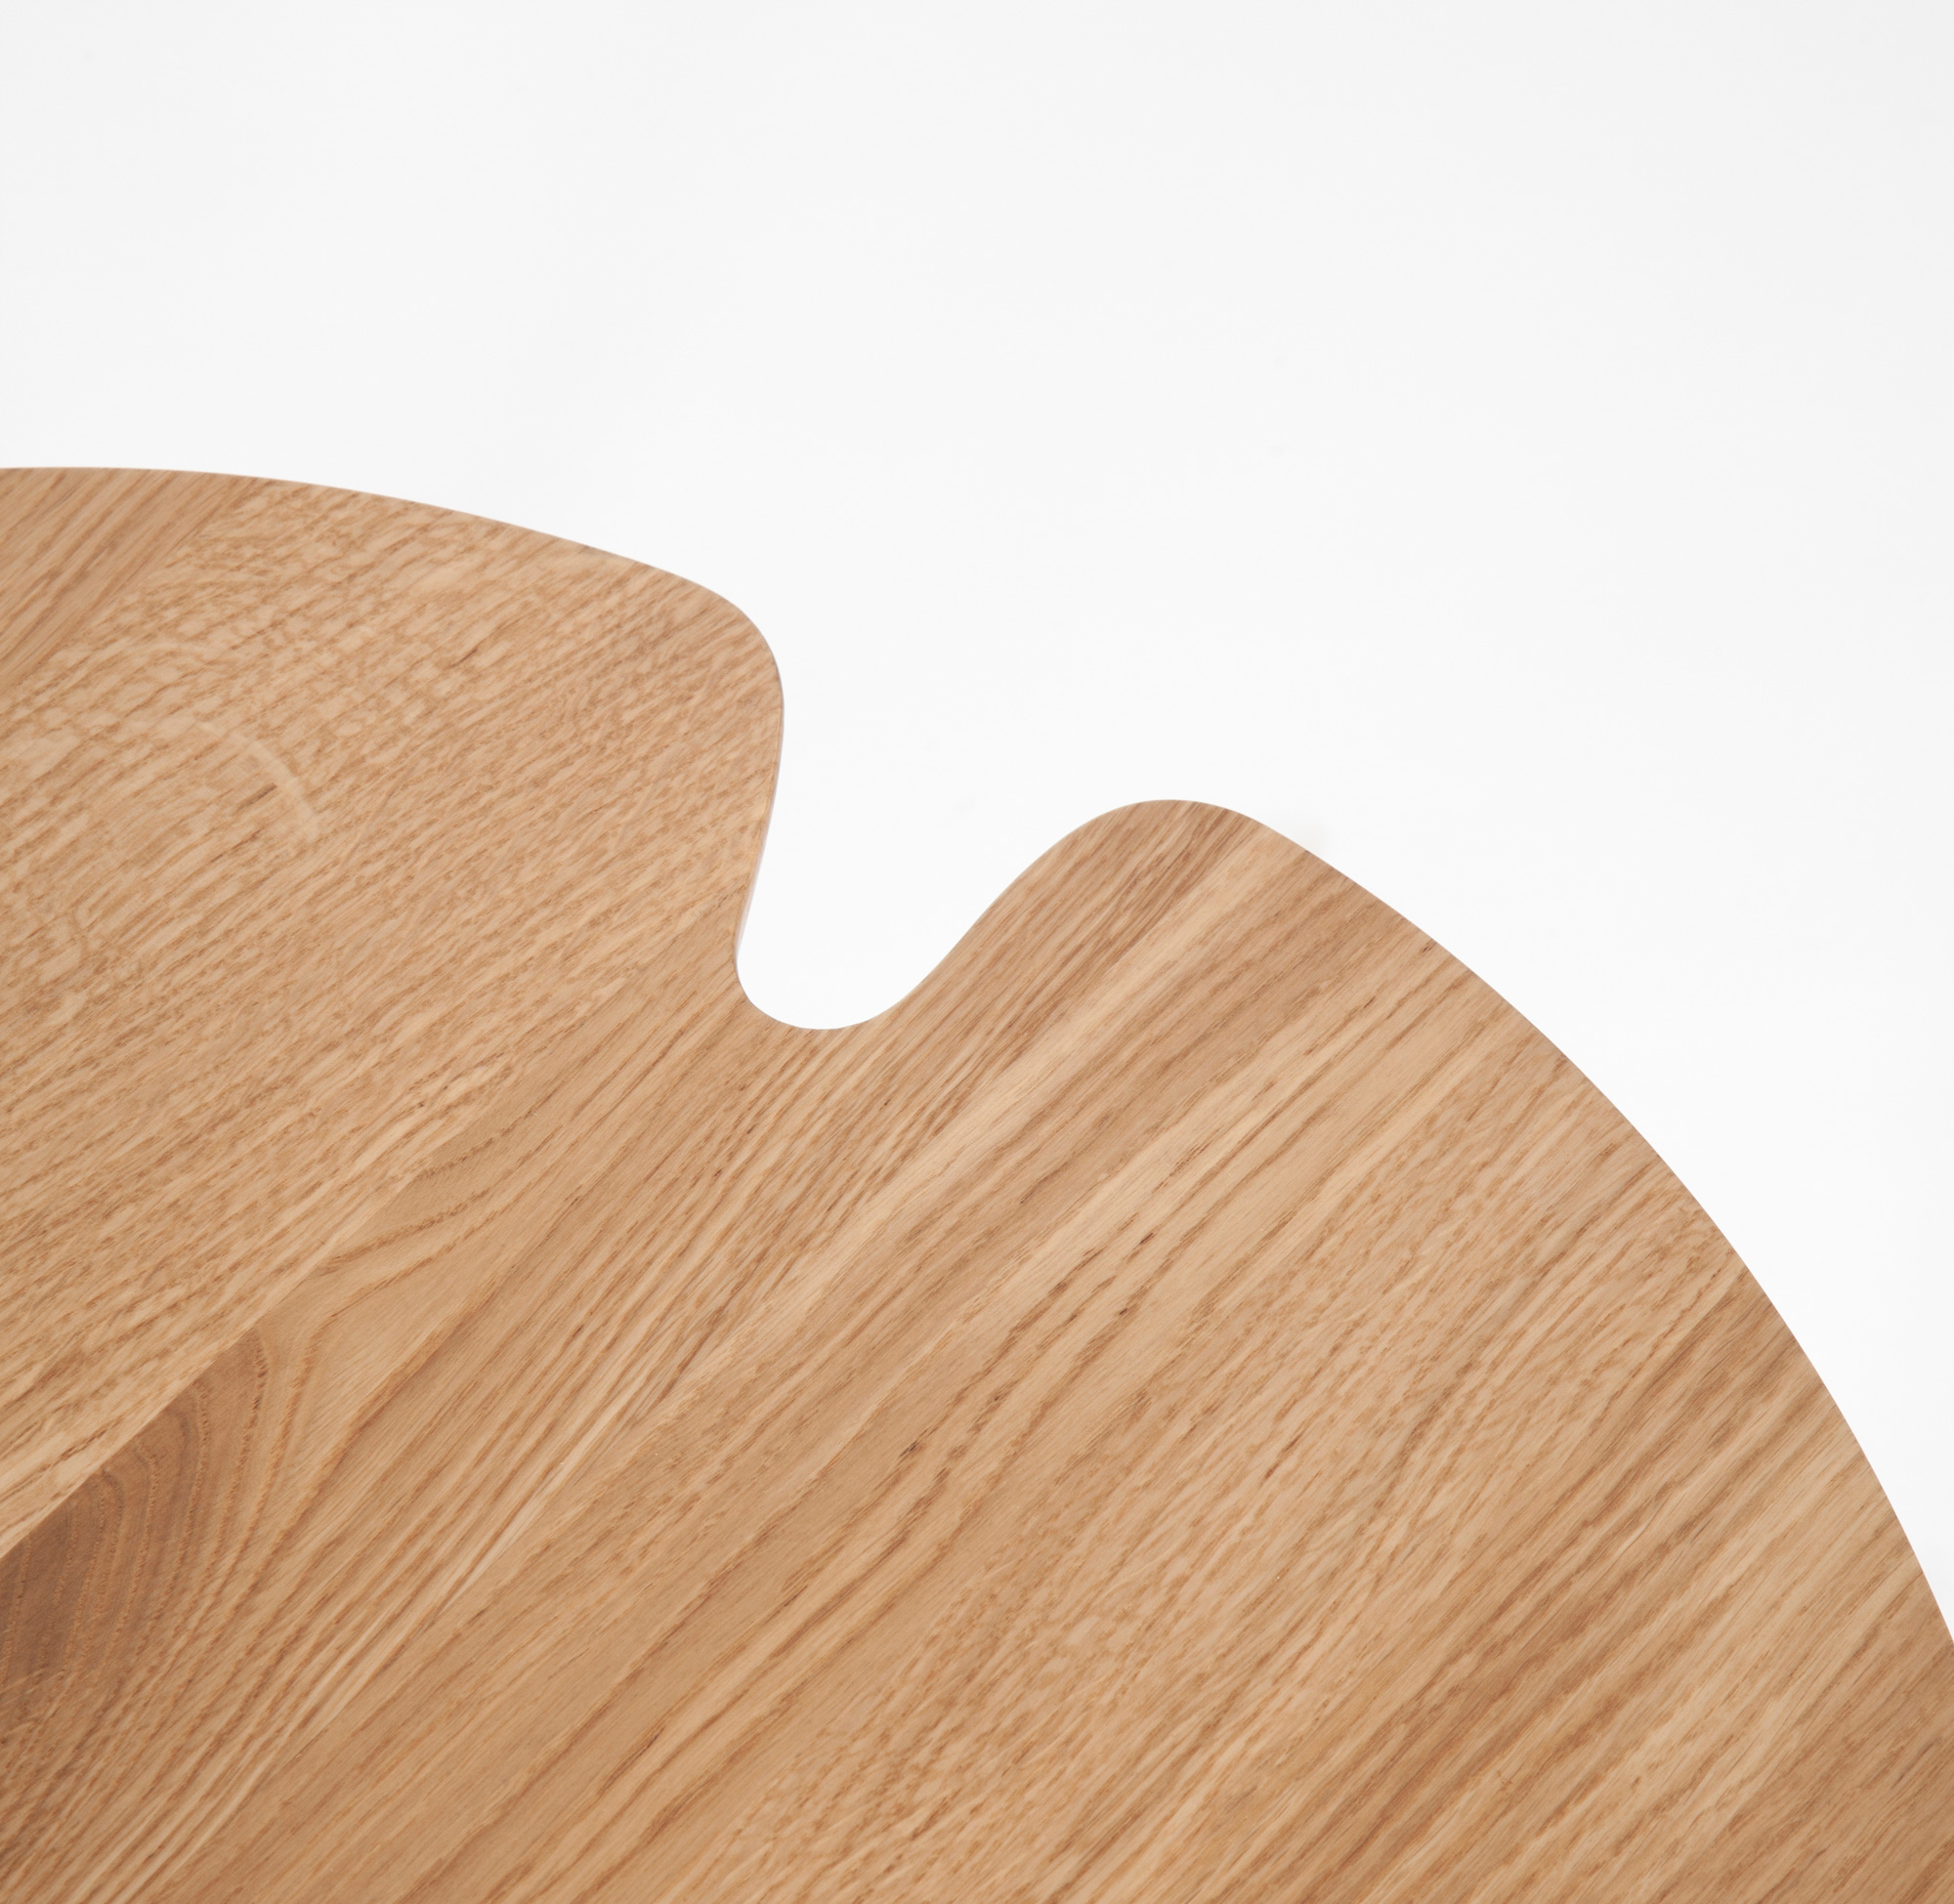 Nenuphar tables by Stephane Chapelet for HANSEN